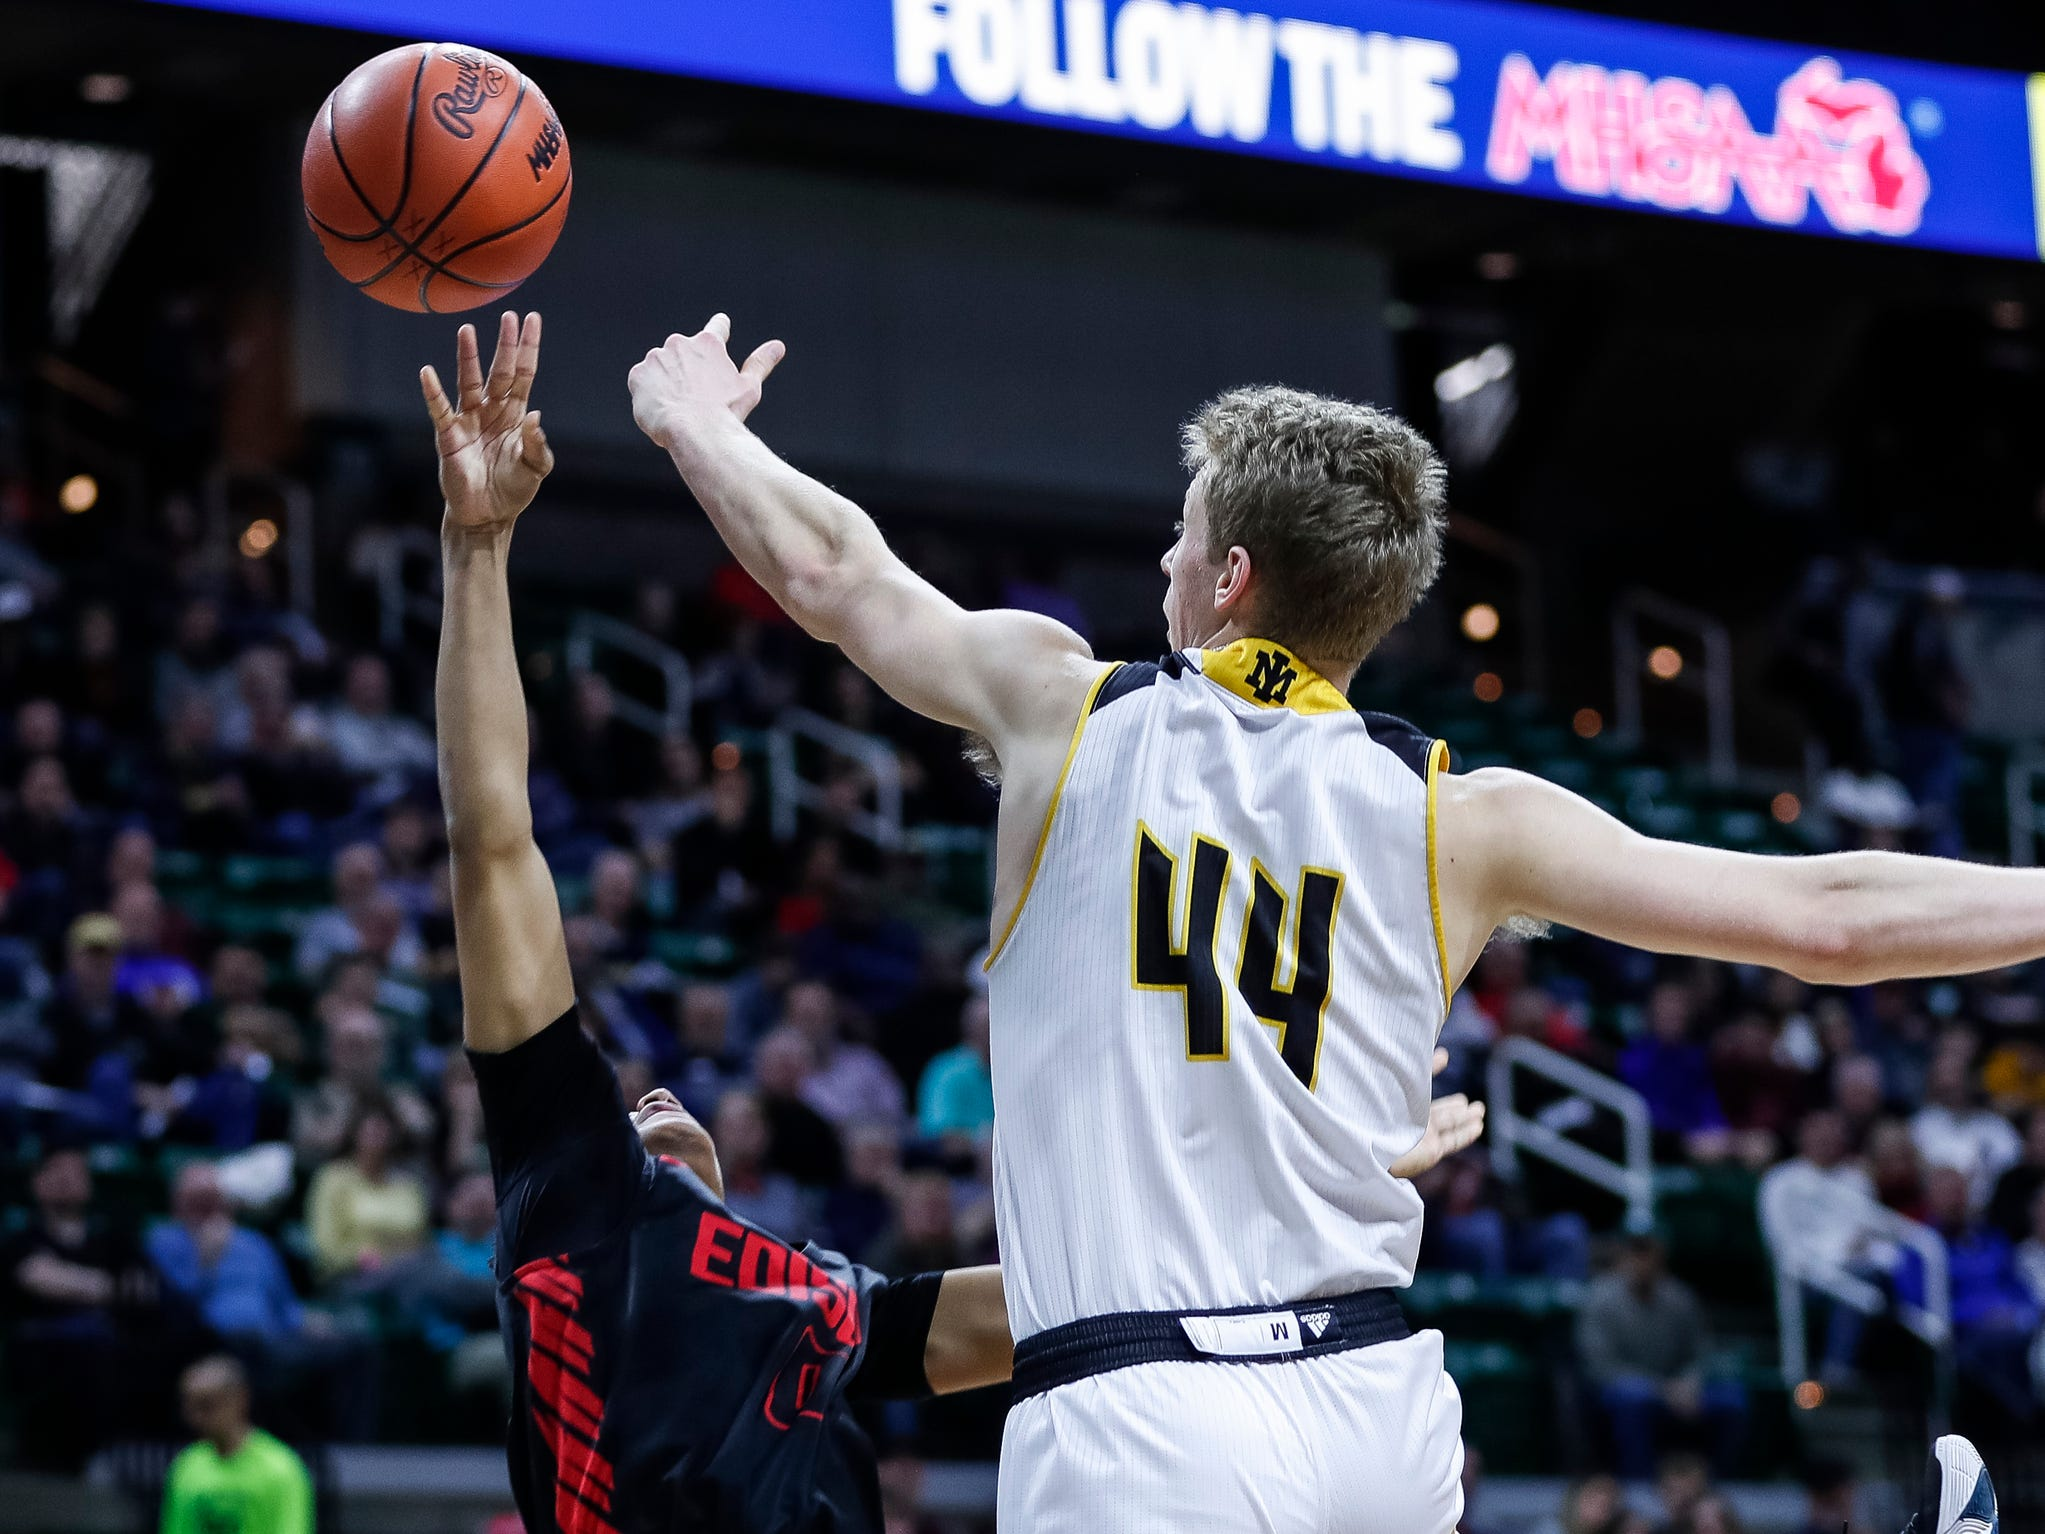 Iron Mountain's Charlie Gerhard blocks a shot from Detroit Edison's Ralph Bland during the first half of MHSAA Division 3 semifinal at the Breslin Center in East Lansing, Thursday, March 14, 2019.